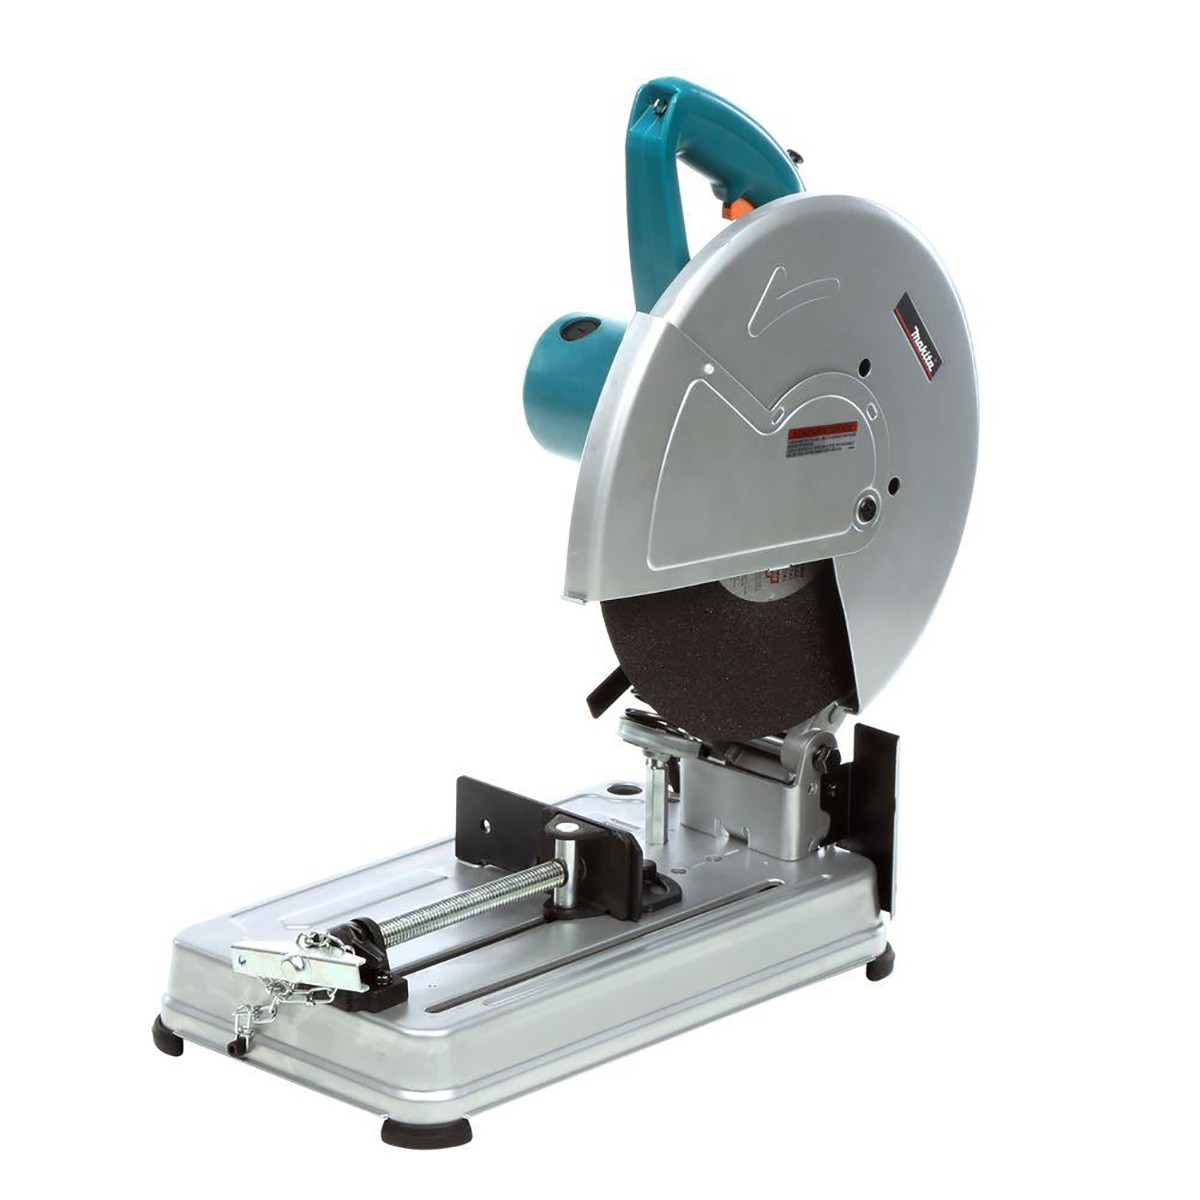 Makita MT Series Portable Cut-off Compound Miter SawCut-off